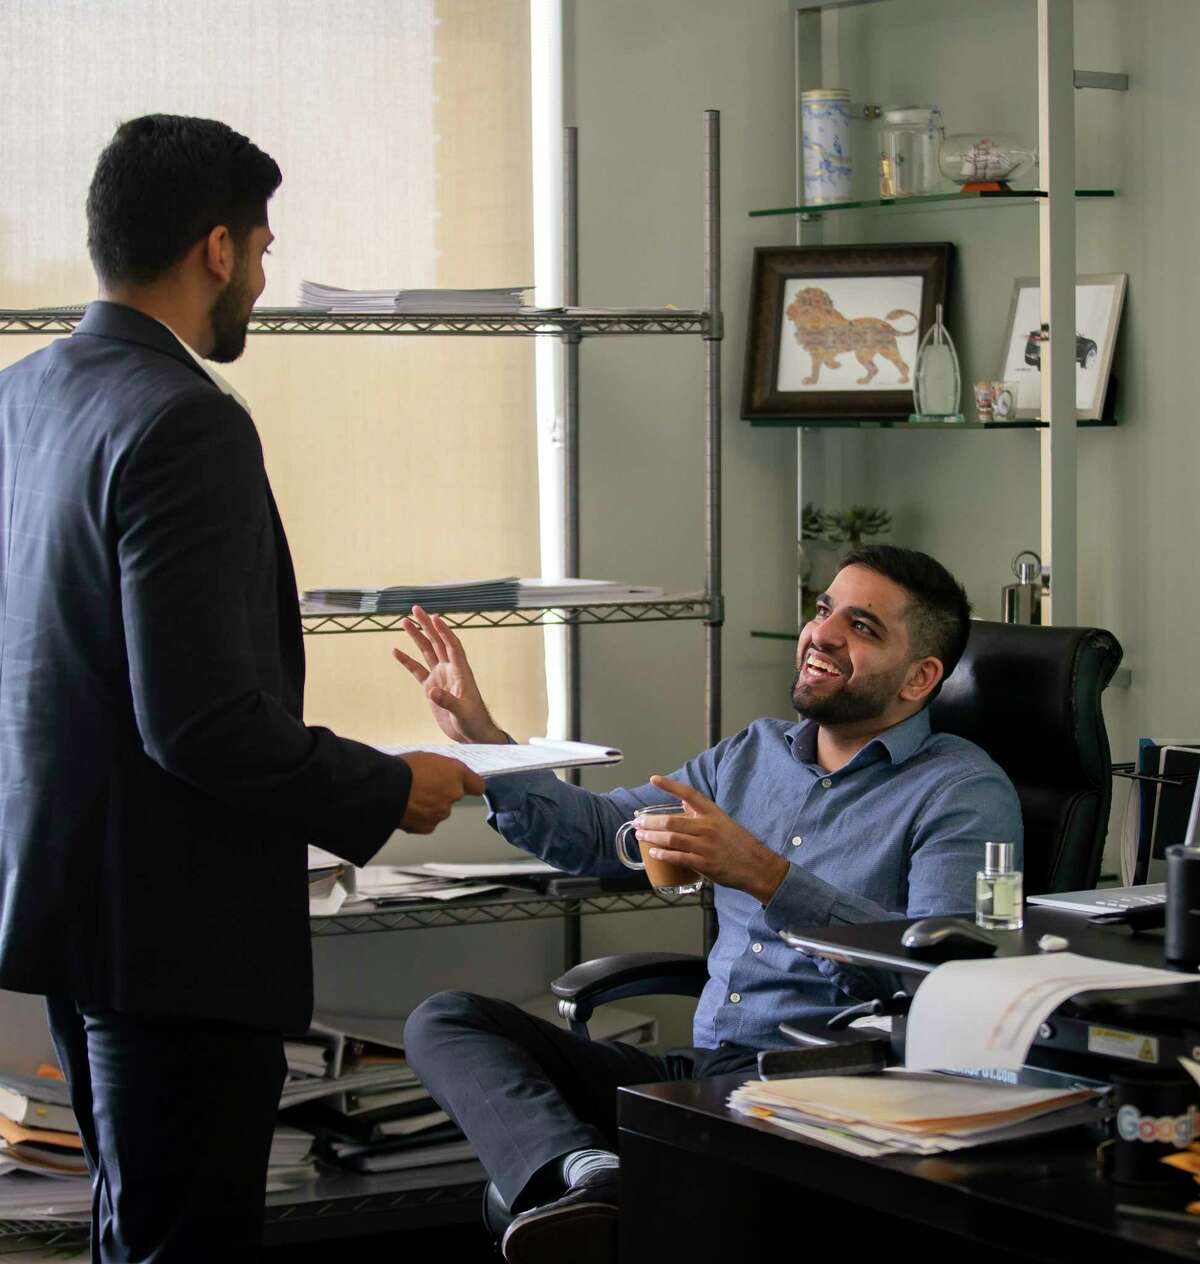 Zulifiqar Abedin, right, talks with Kevin Gandhi, left, in Abedin's office, Wednesday, Aug. 4, 2021, at ZT Corporate's Houston office. The company's CEO, Taseer Badar, is pushing to require 100% of his employees to be vaccinated.